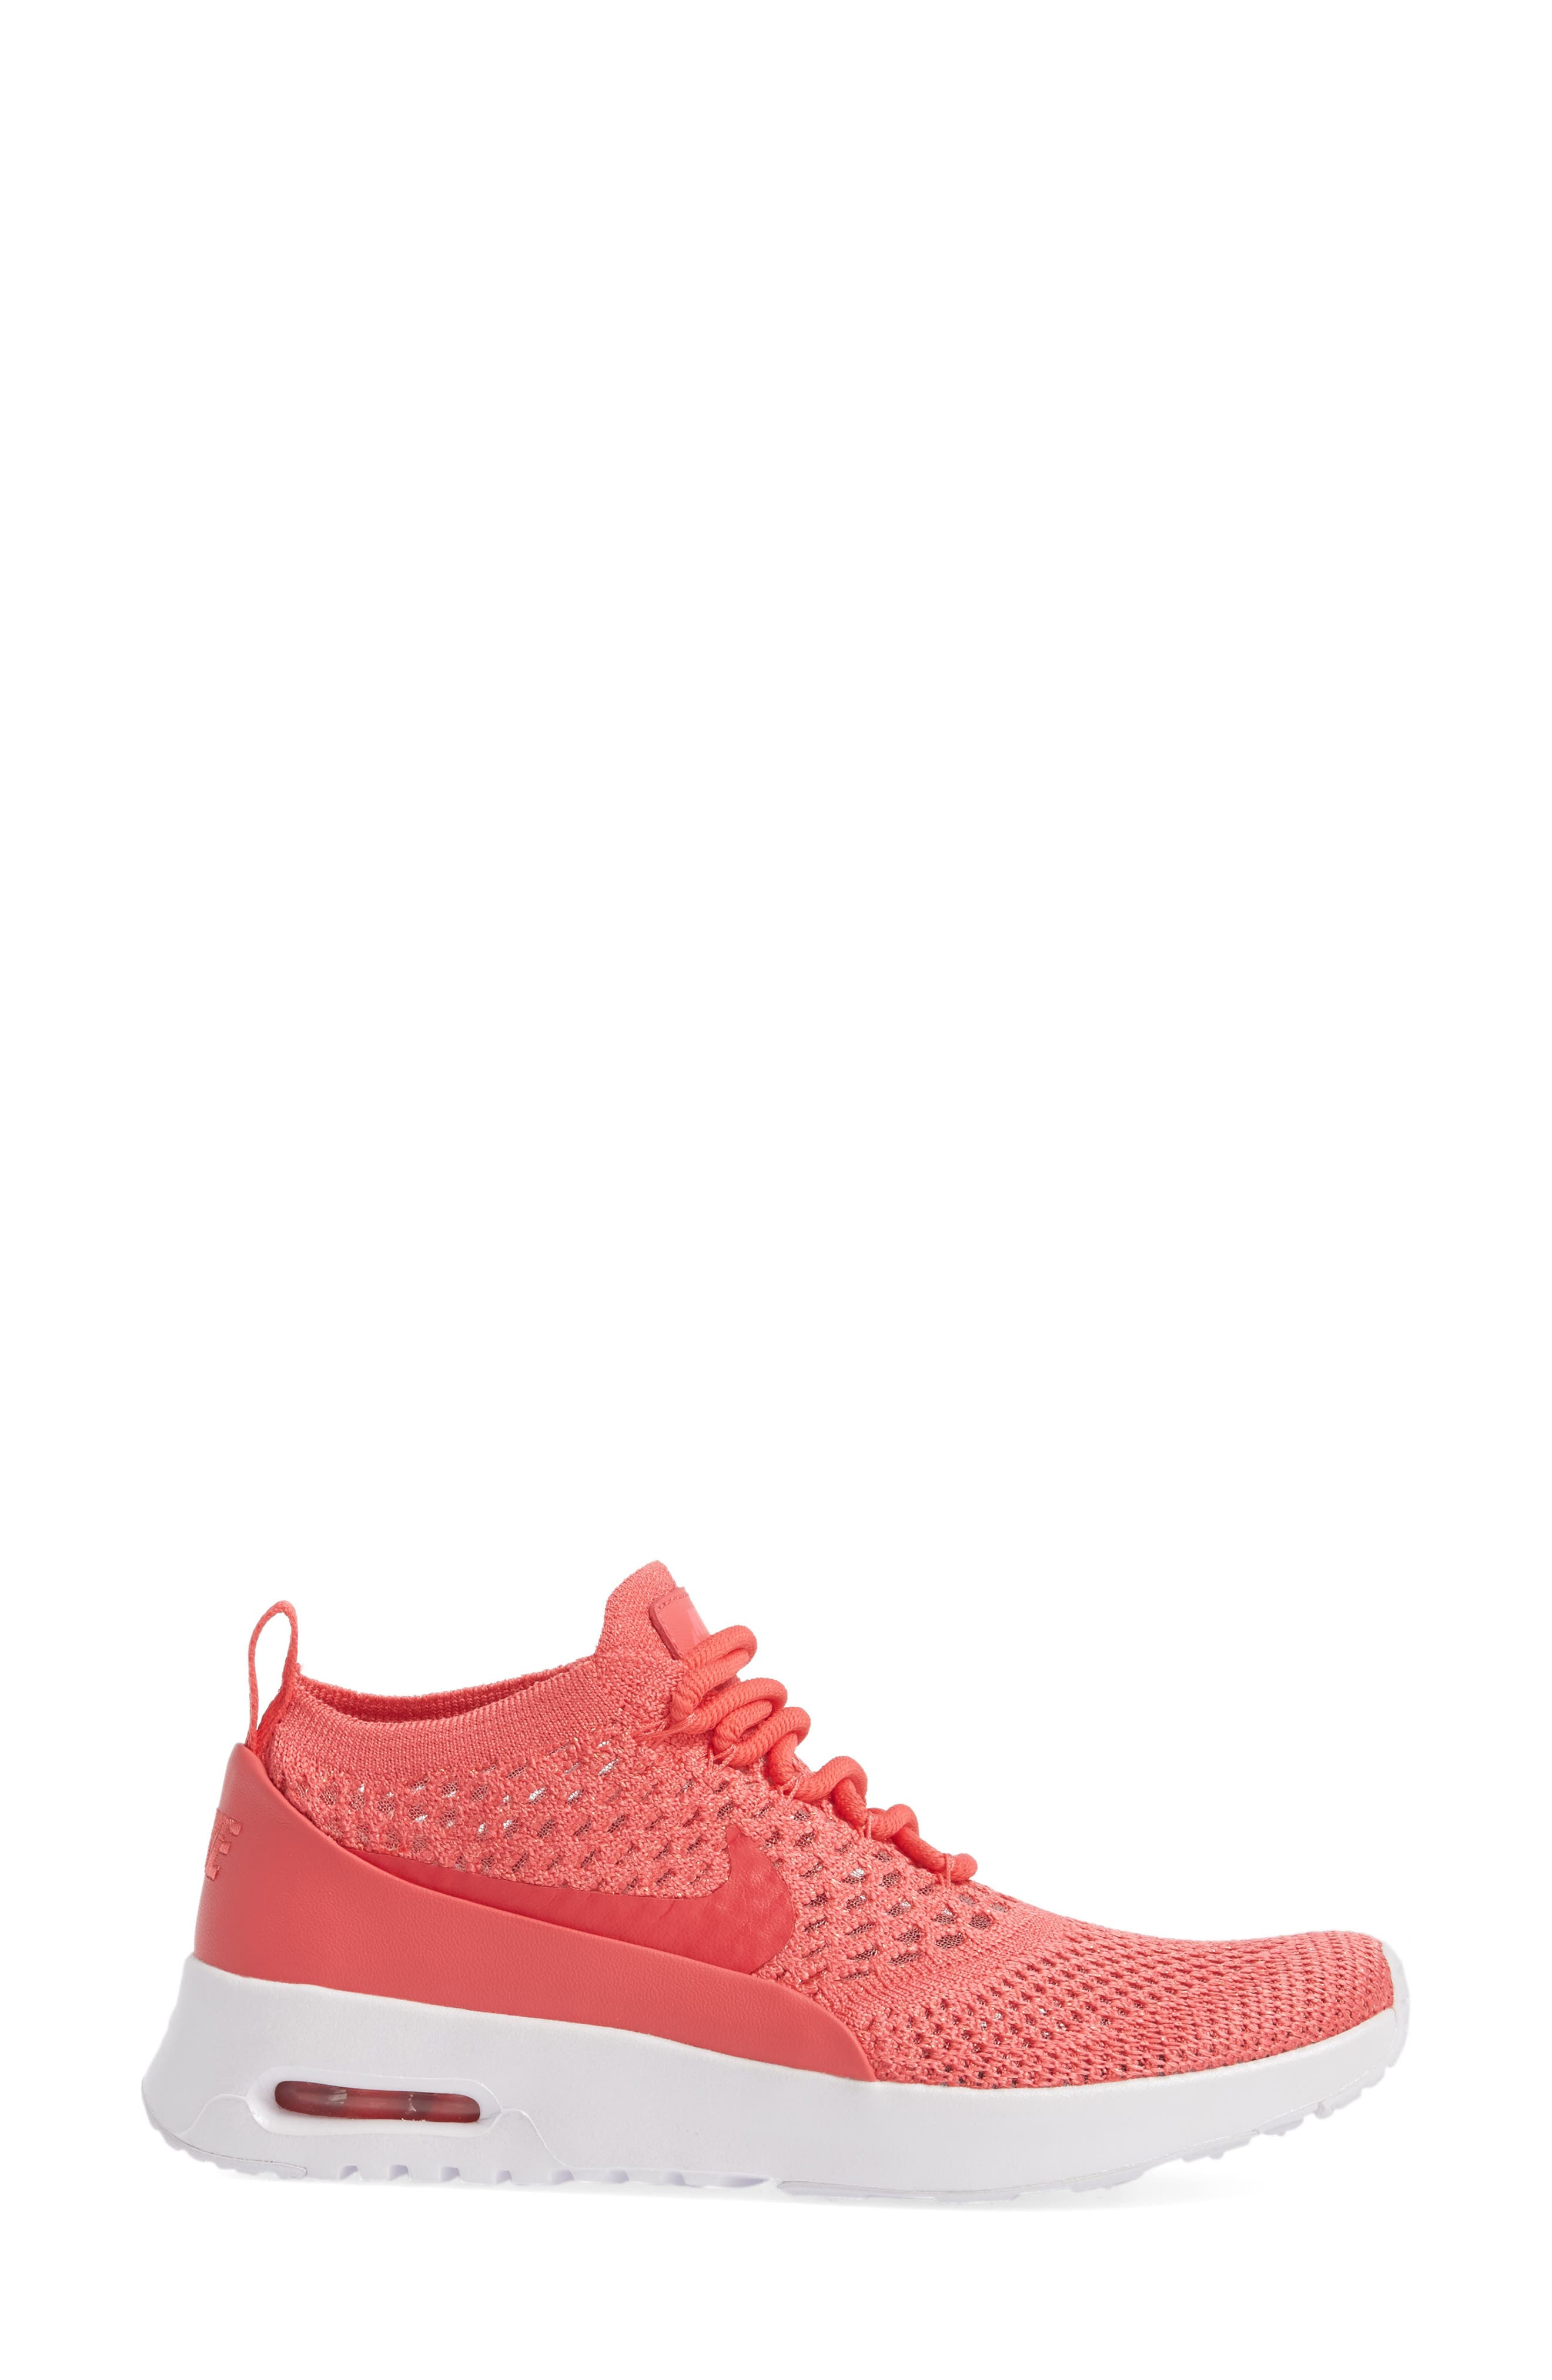 Air Max Thea Ultra Flyknit Sneaker,                             Alternate thumbnail 3, color,                             Geranium/ Geranium